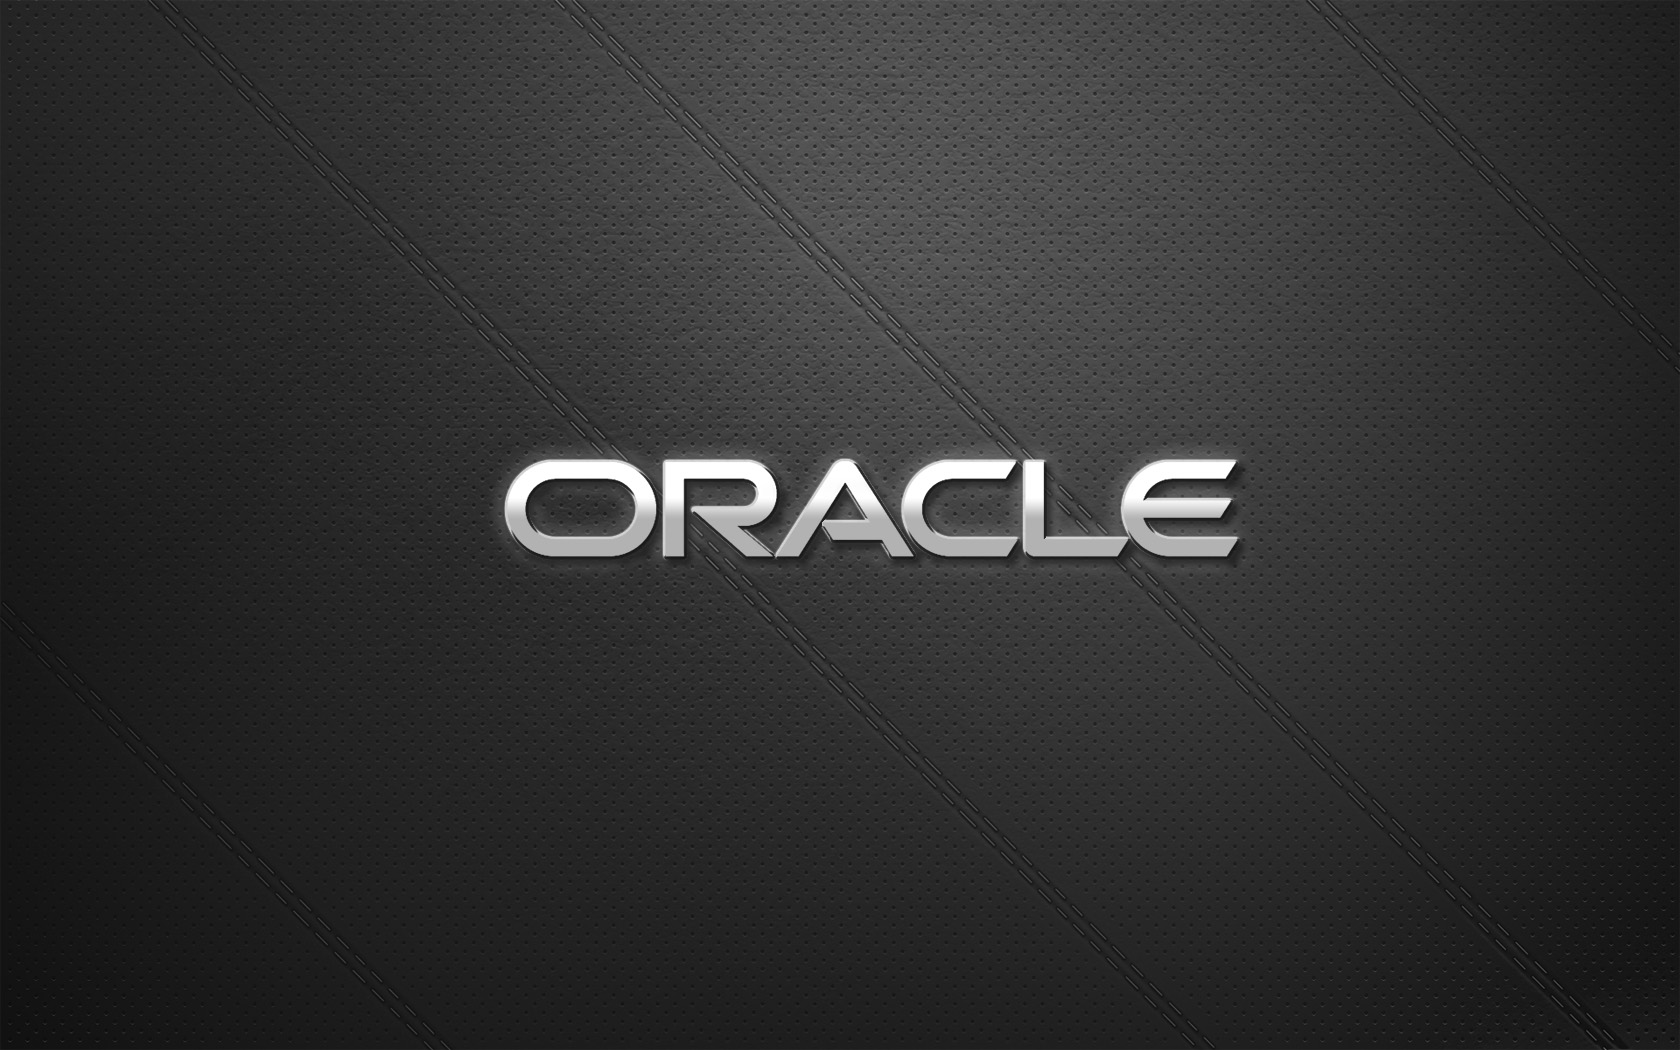 August 11, 2016: Oracle Wallpapers, 1680x1050